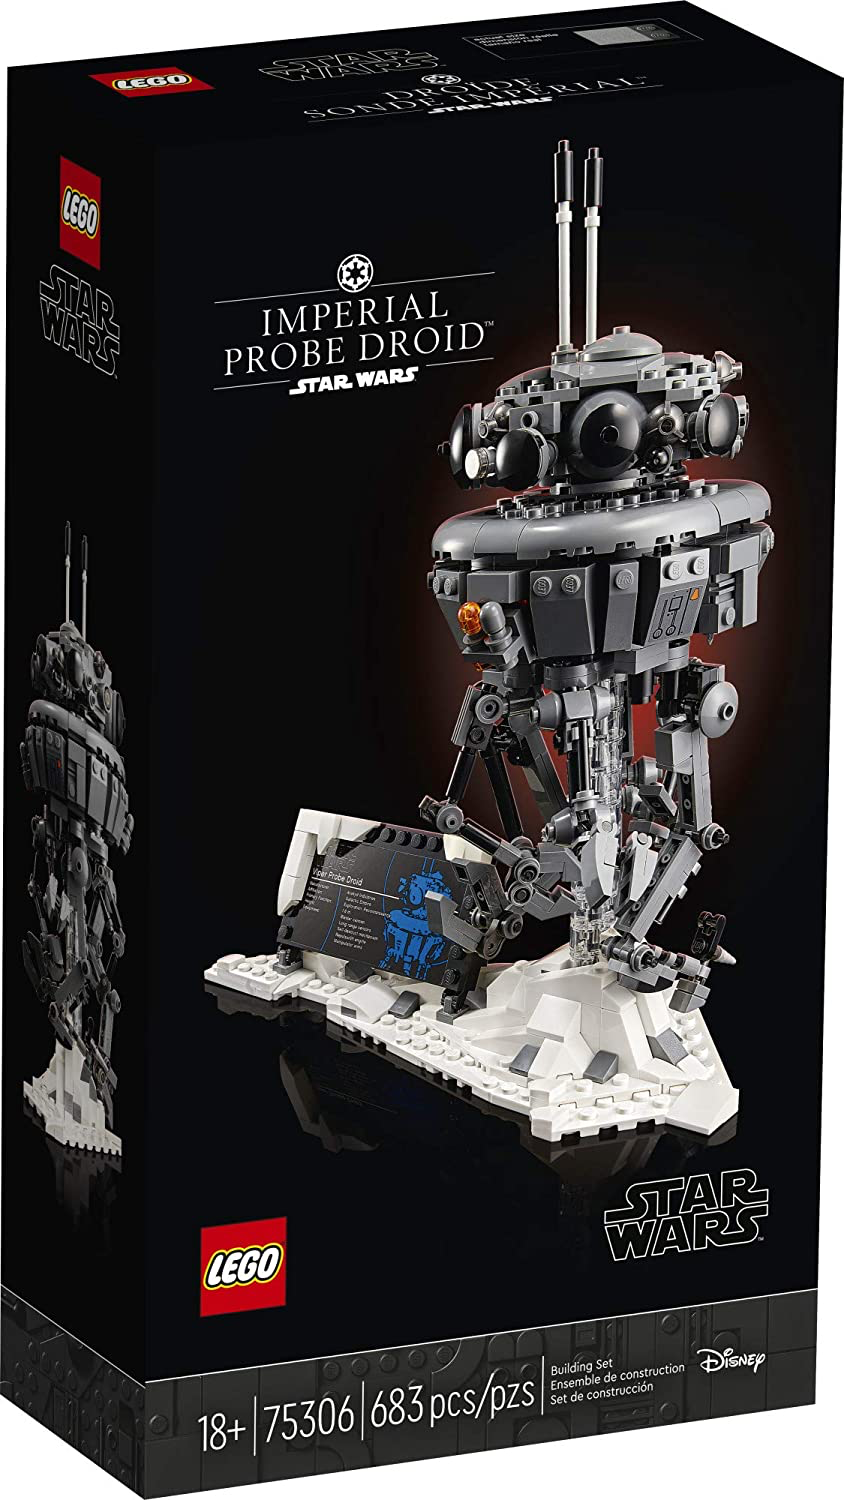 SW Imperial Probe Droid Lego Set 1